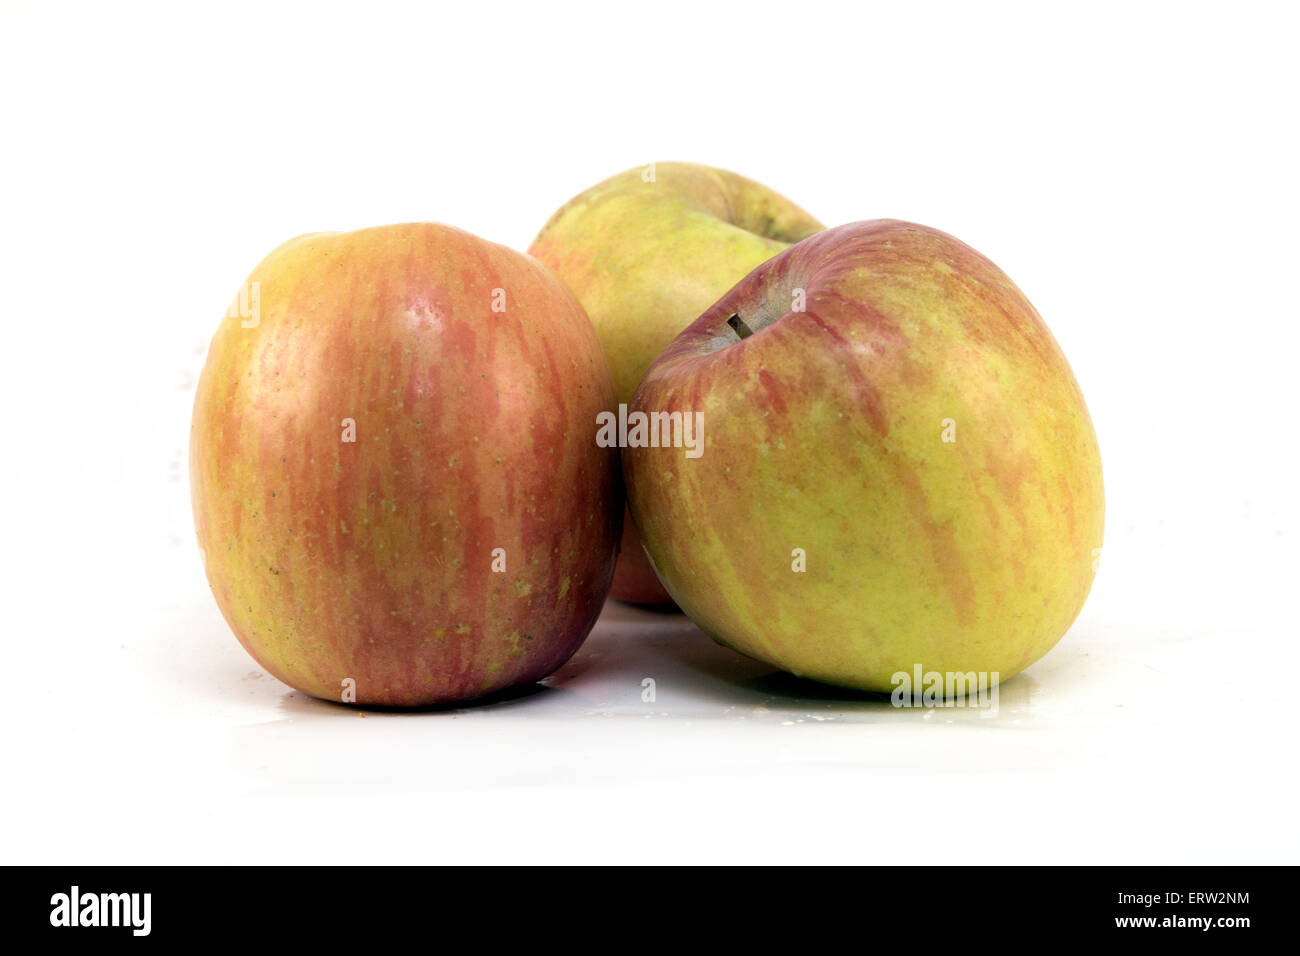 Trio of Fuji Apples - Stock Image